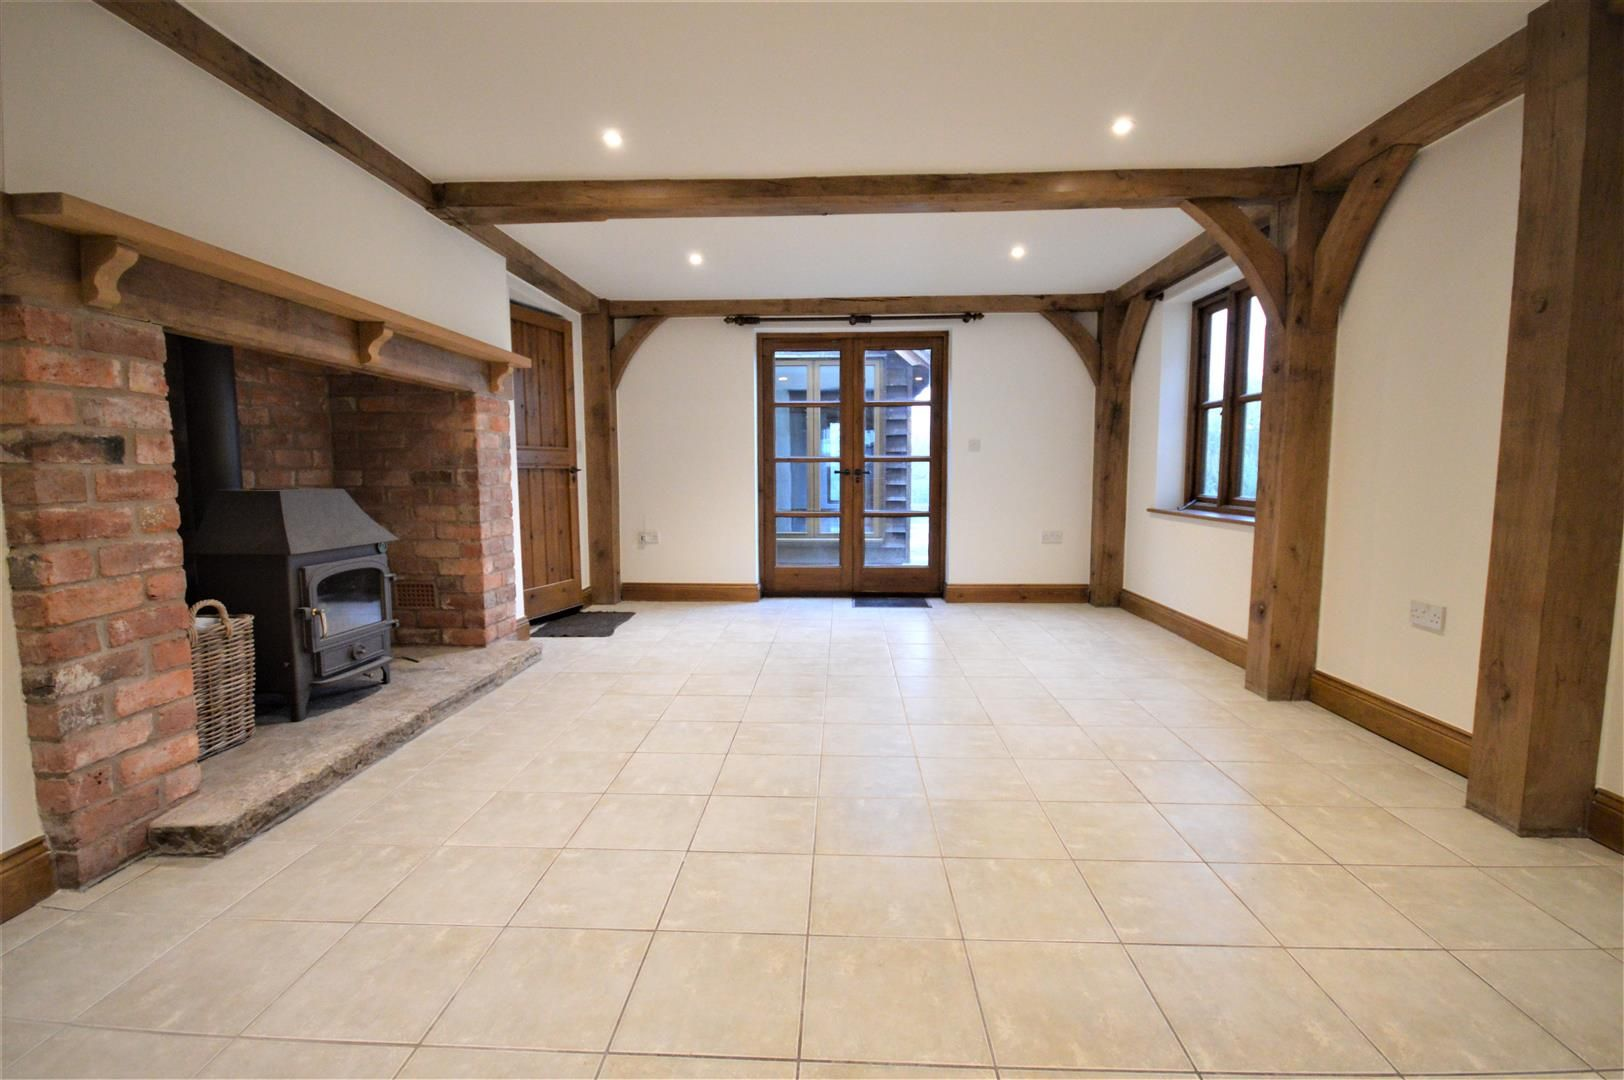 4 bed semi-detached to rent in Weobley  - Property Image 4